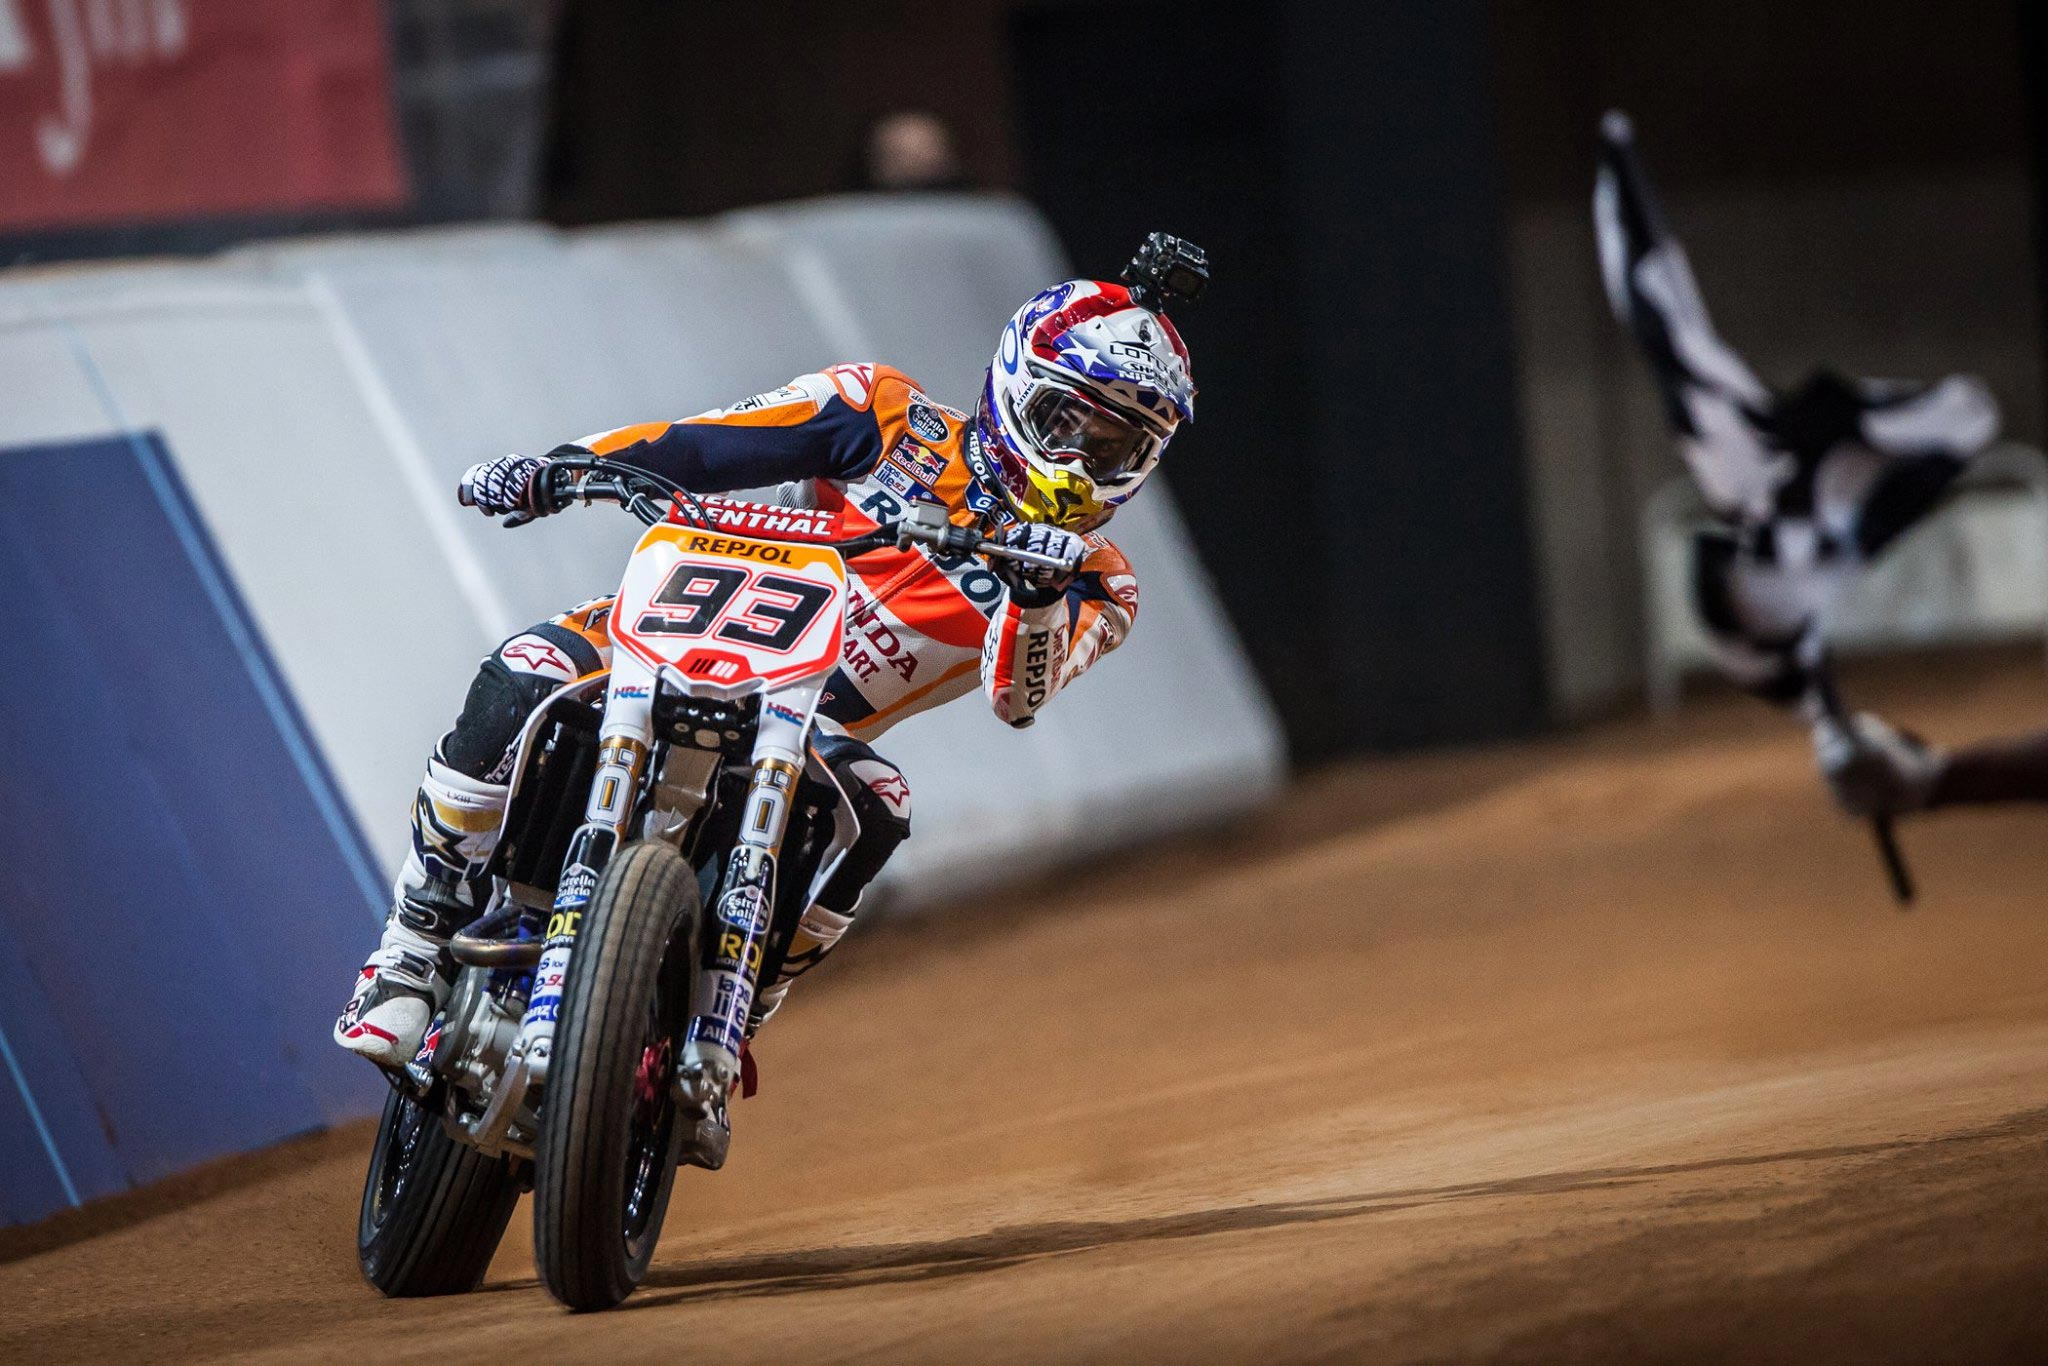 [RETRANSMISSIONS] TV / streaming / DDL... - Page 4 Marc-marquez-superprestigio-2015